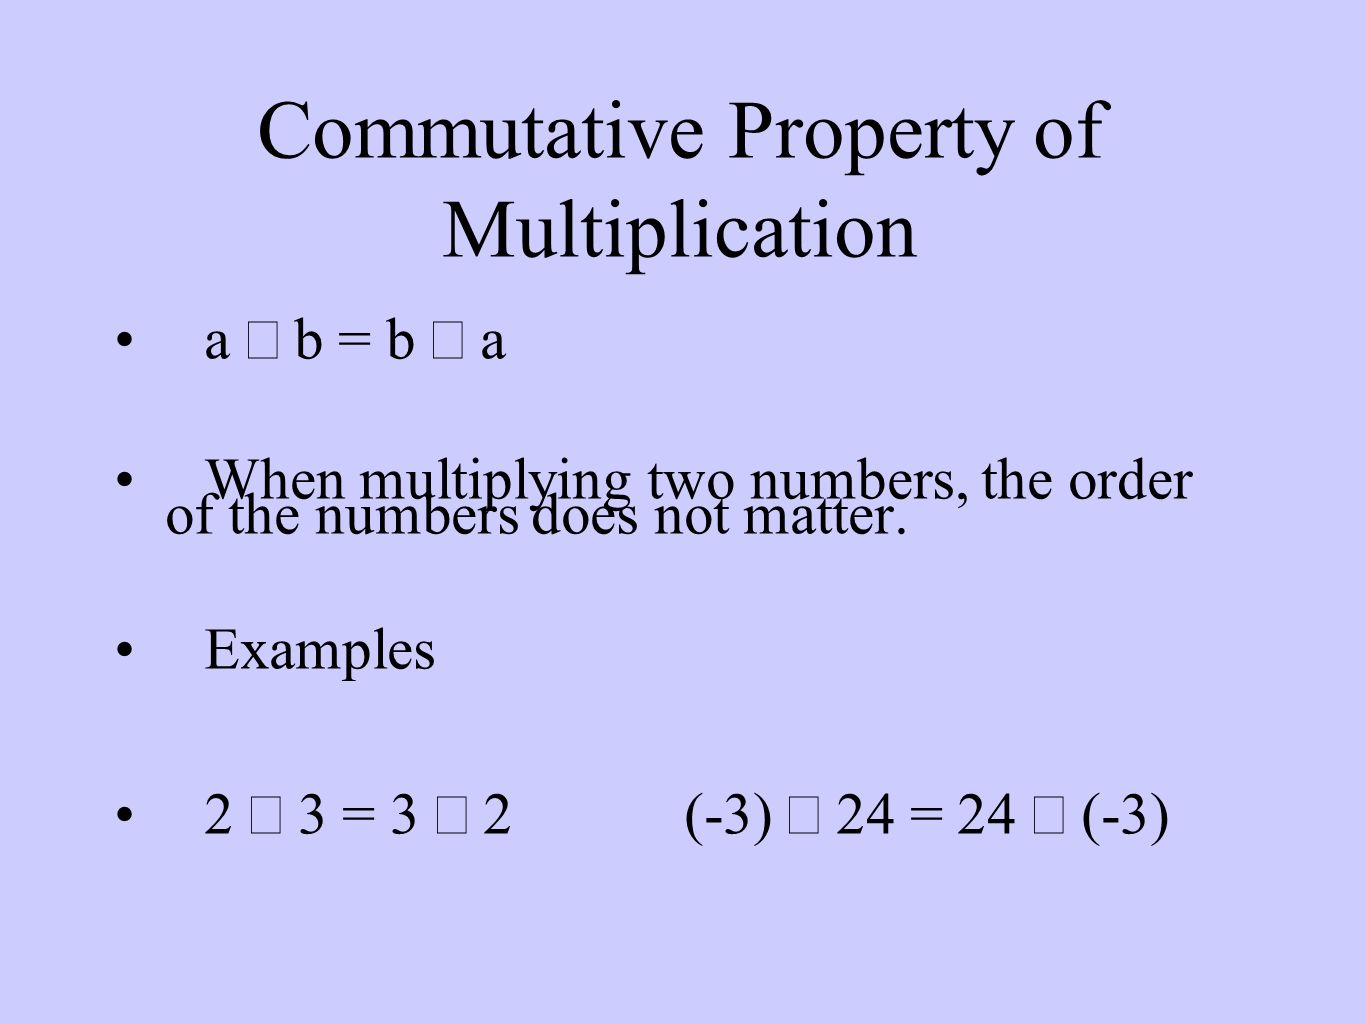 Commutative Property of Multiplication a  b = b  a When multiplying two numbers, the order of the numbers does not matter.